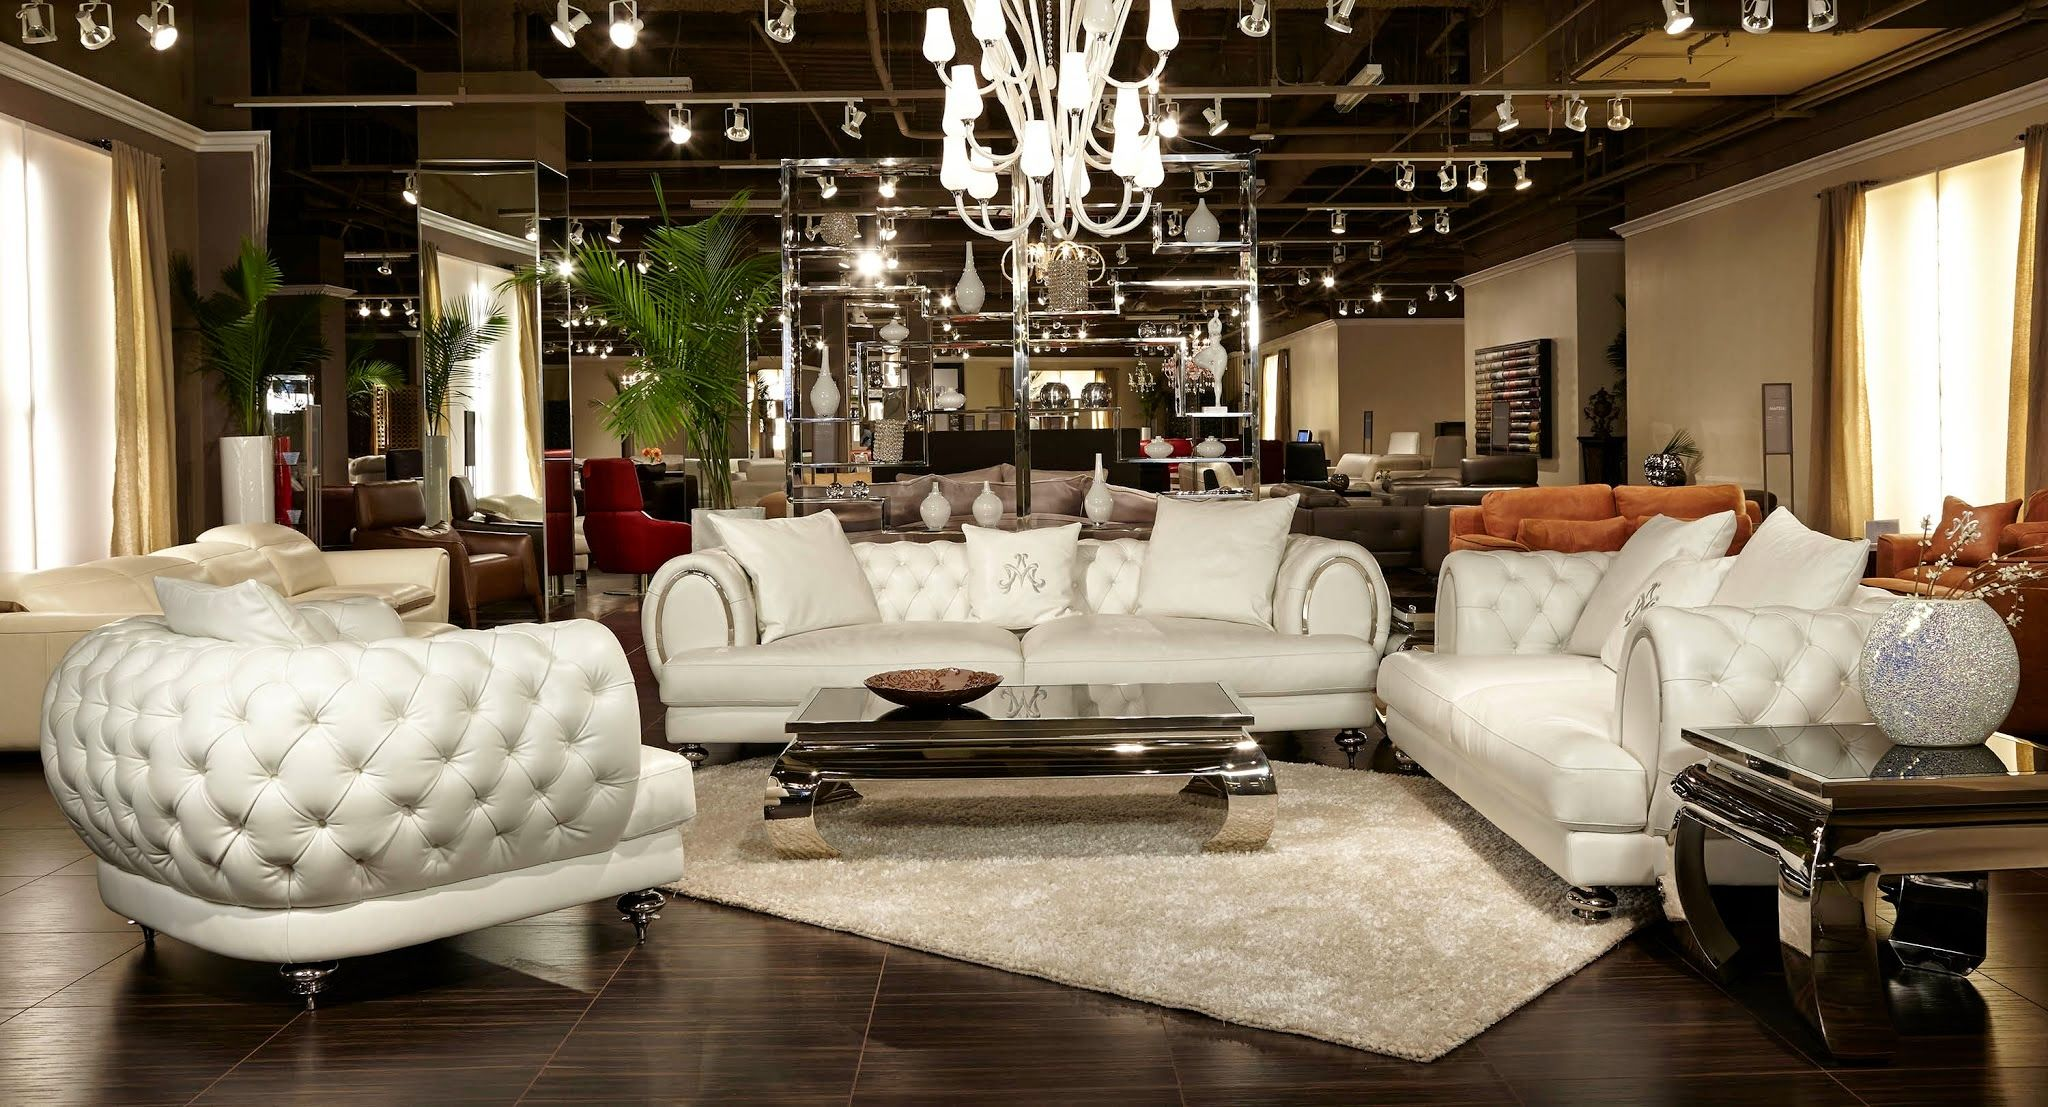 aico living room set. aico furniture - mia bella ellia leather tufted 2 piece living room set in frosted cream aico e